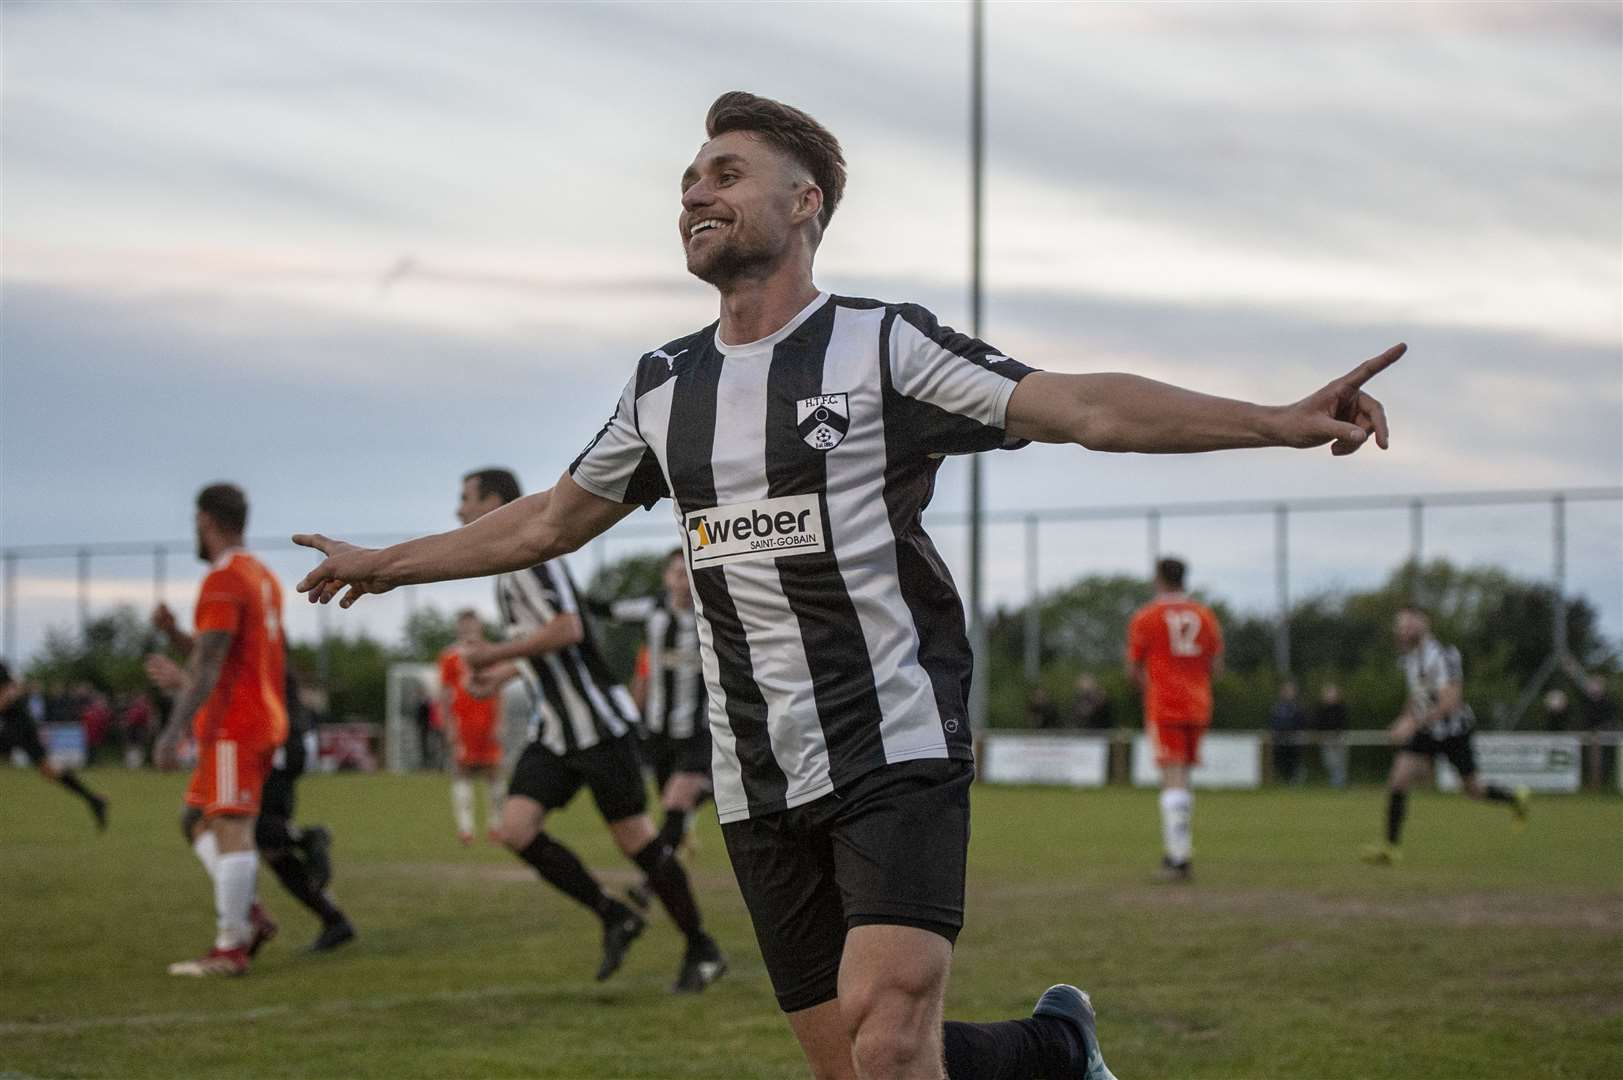 First Division North runners-up Harleston Town win 2018/19 Thurlow Nunn League First Division Knockout Cup final at Woodbridge Town, beating First Division South side Holland 6-0. Picture: Neil Dady (9408127)